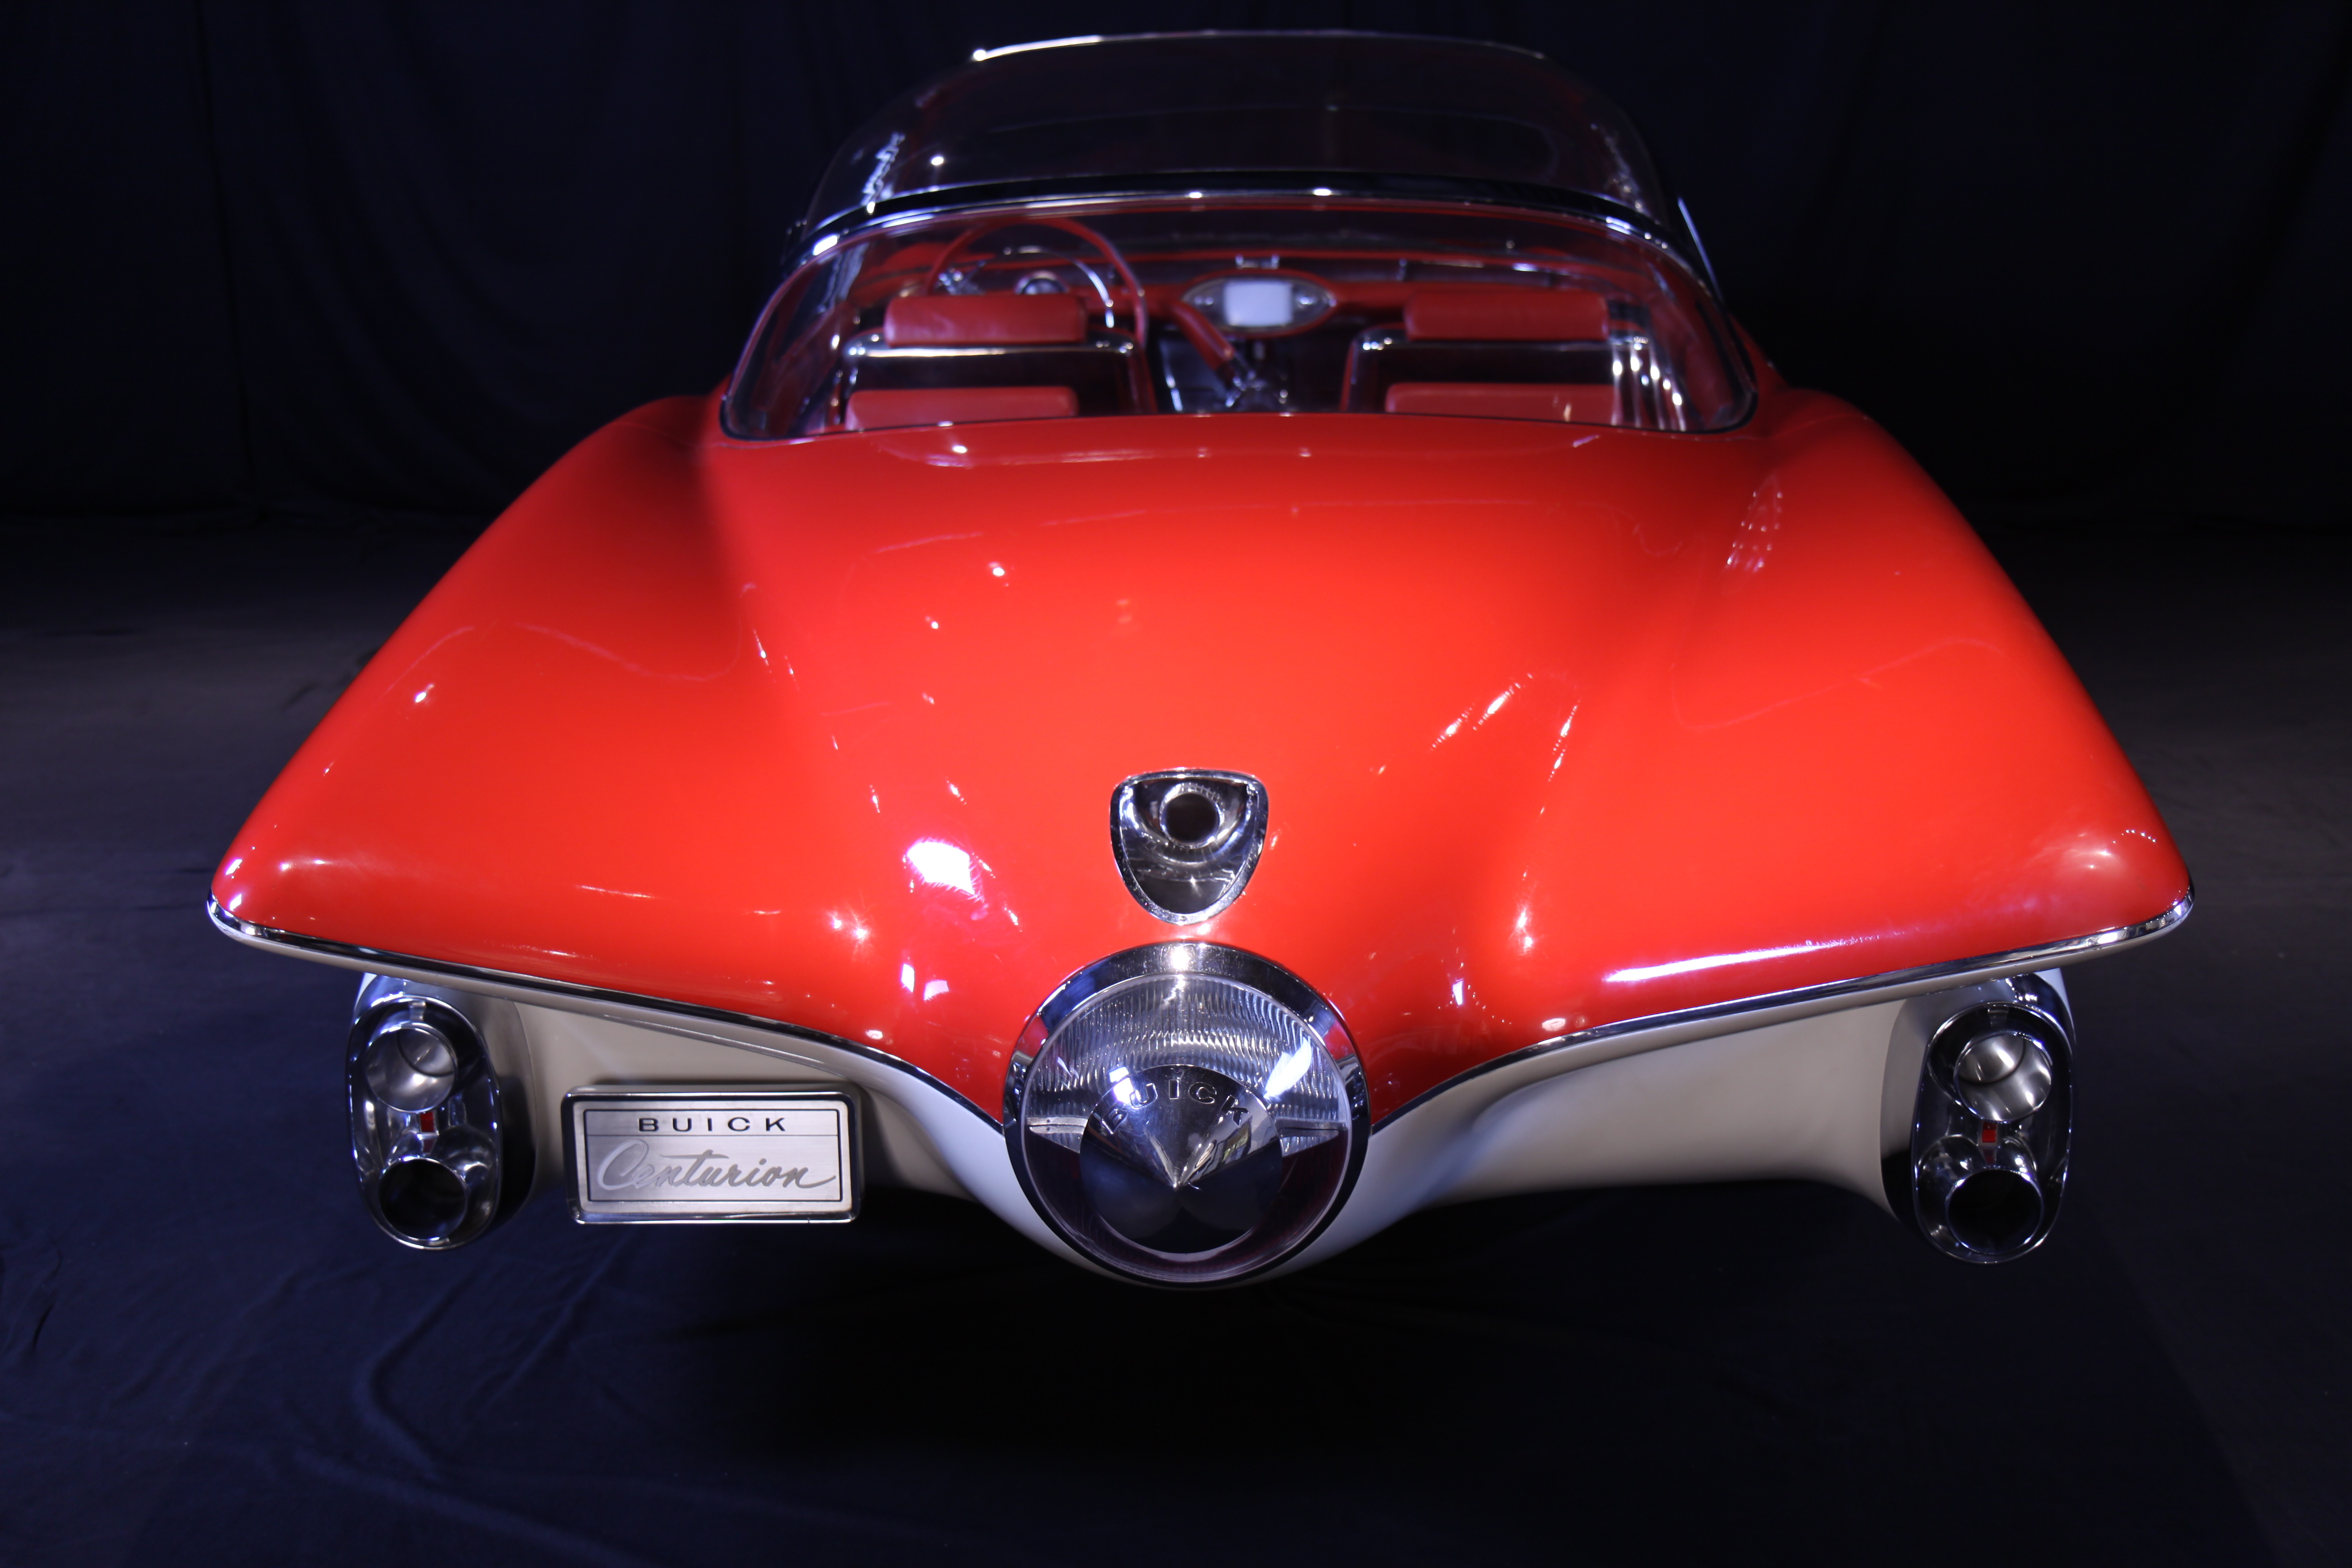 September 1 2012 MLive 1956 Centurion Concept Car Mainstay At Buick Gallery GM Heritage Center